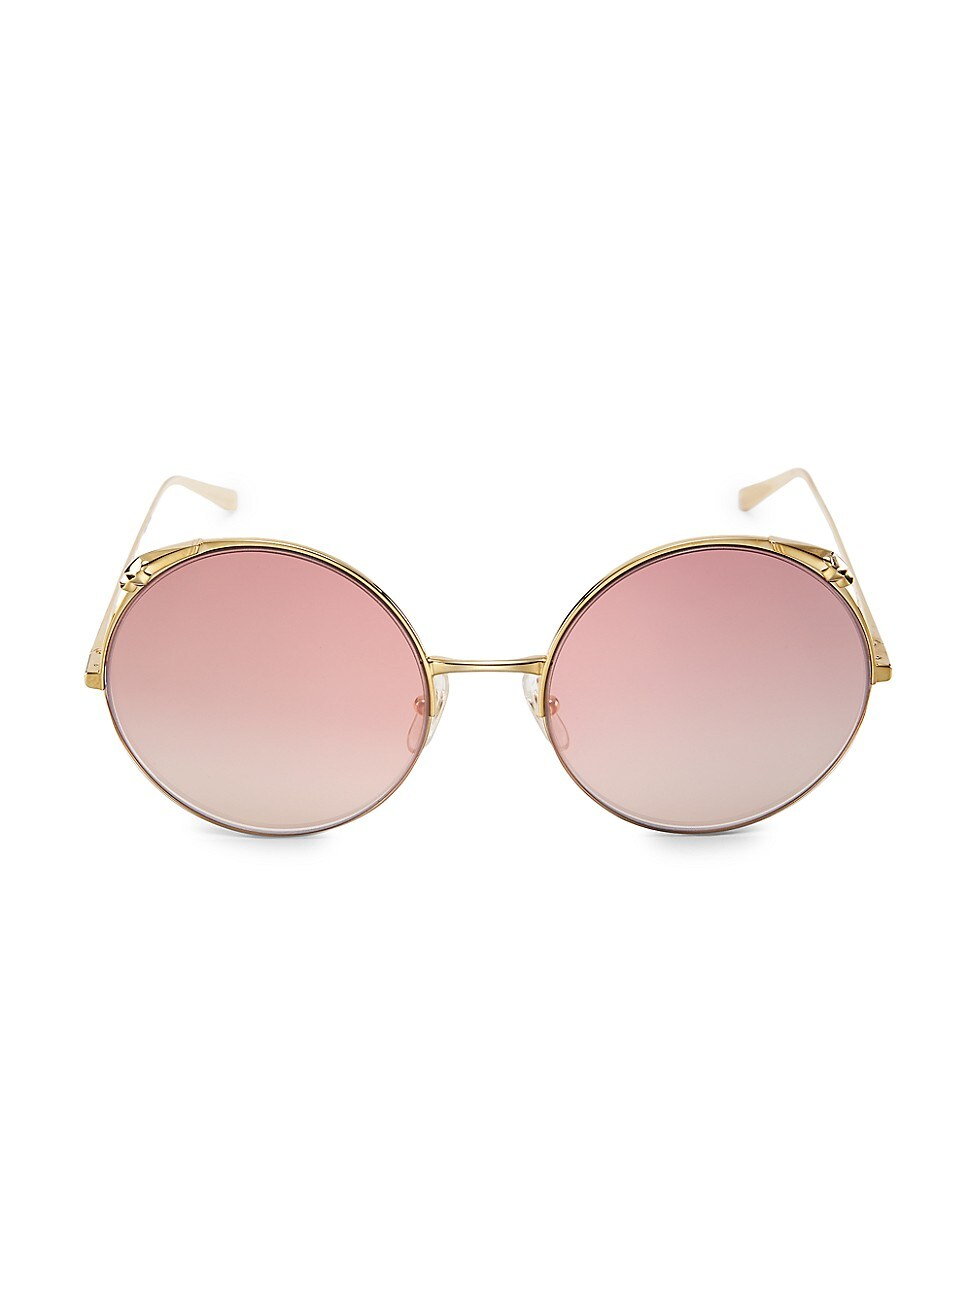 Cartier Women's 60mm Round Sunglasses In Gold